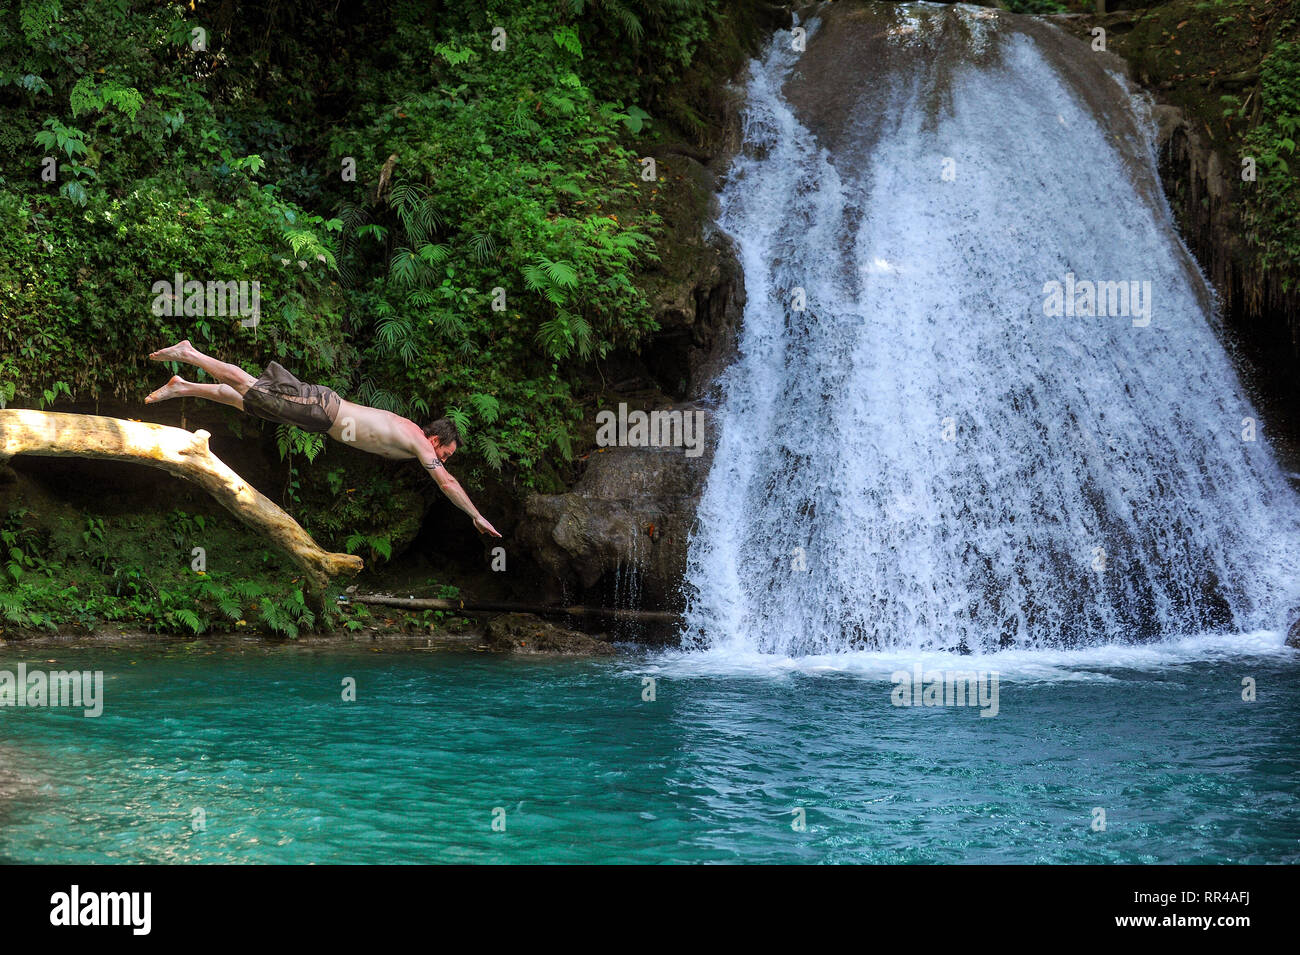 A man dives into the pool at  Blue hole waterfall at Island Gully Falls near Ocho Rios on the Caribbean island of Jamaica. - Stock Image